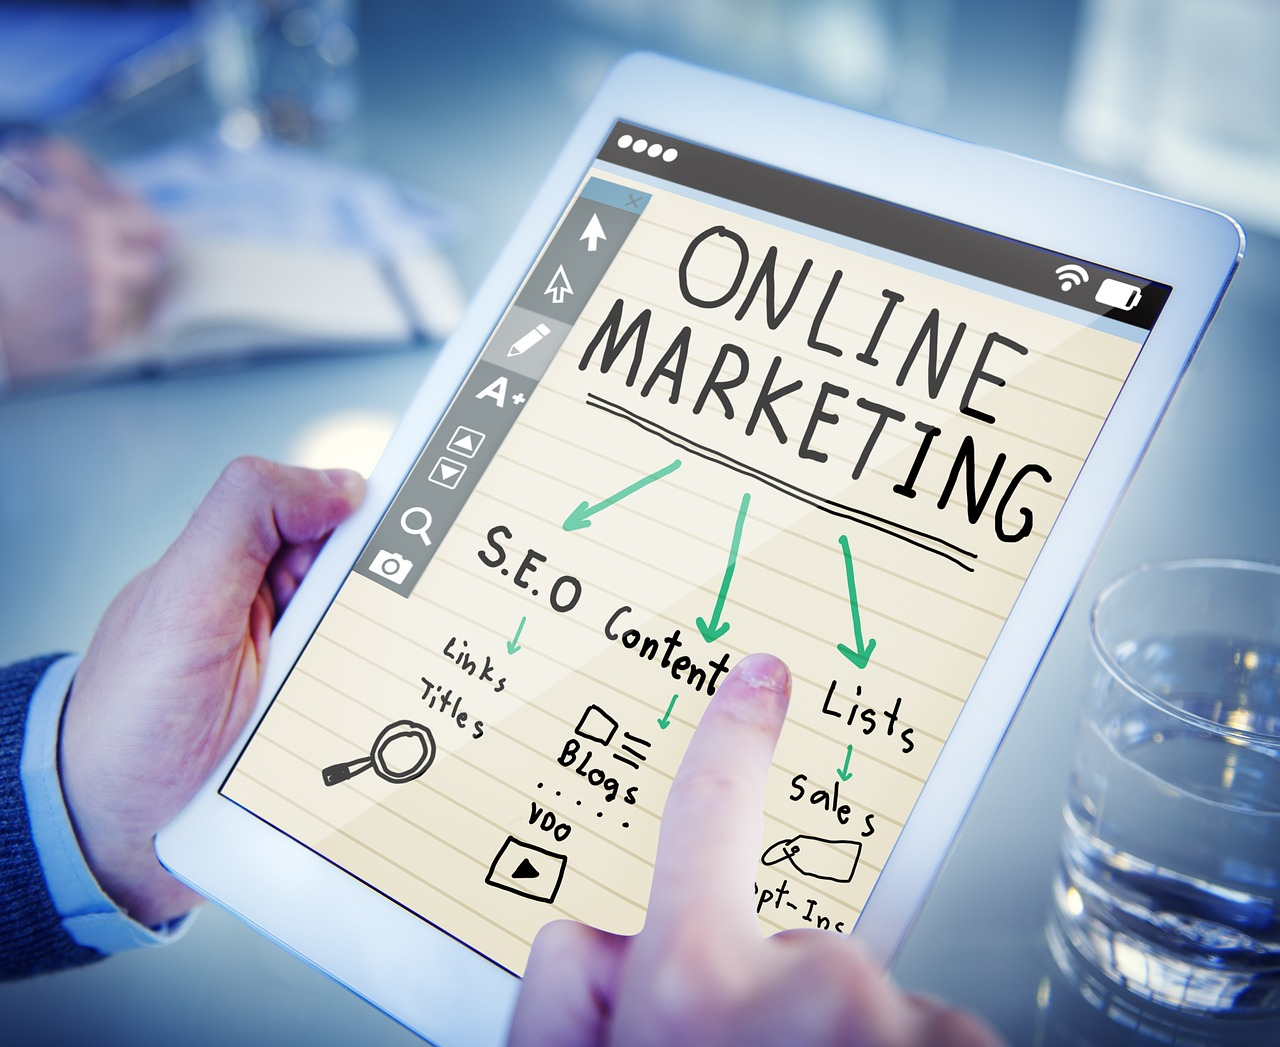 Zielgruppenspezifisches Online Marketing